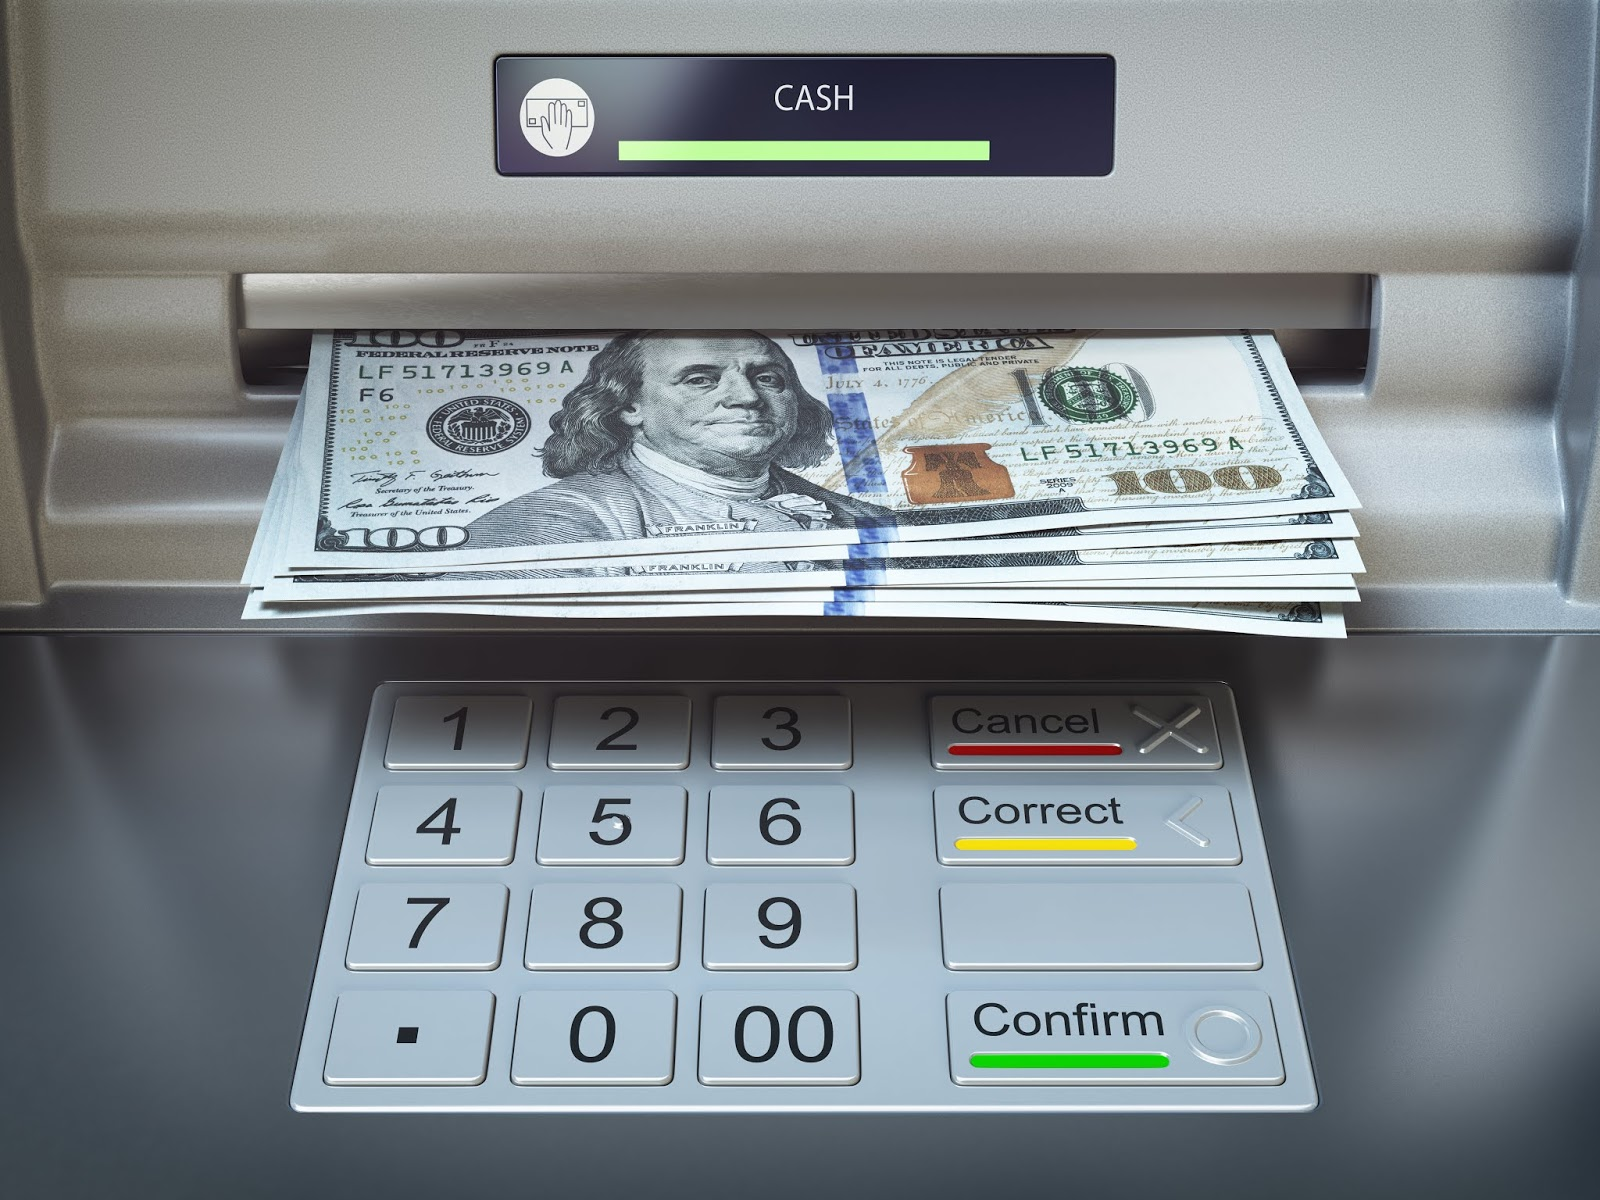 eCryptic Cards: Deep Web Money - Withdraw ATM Cash Daily!